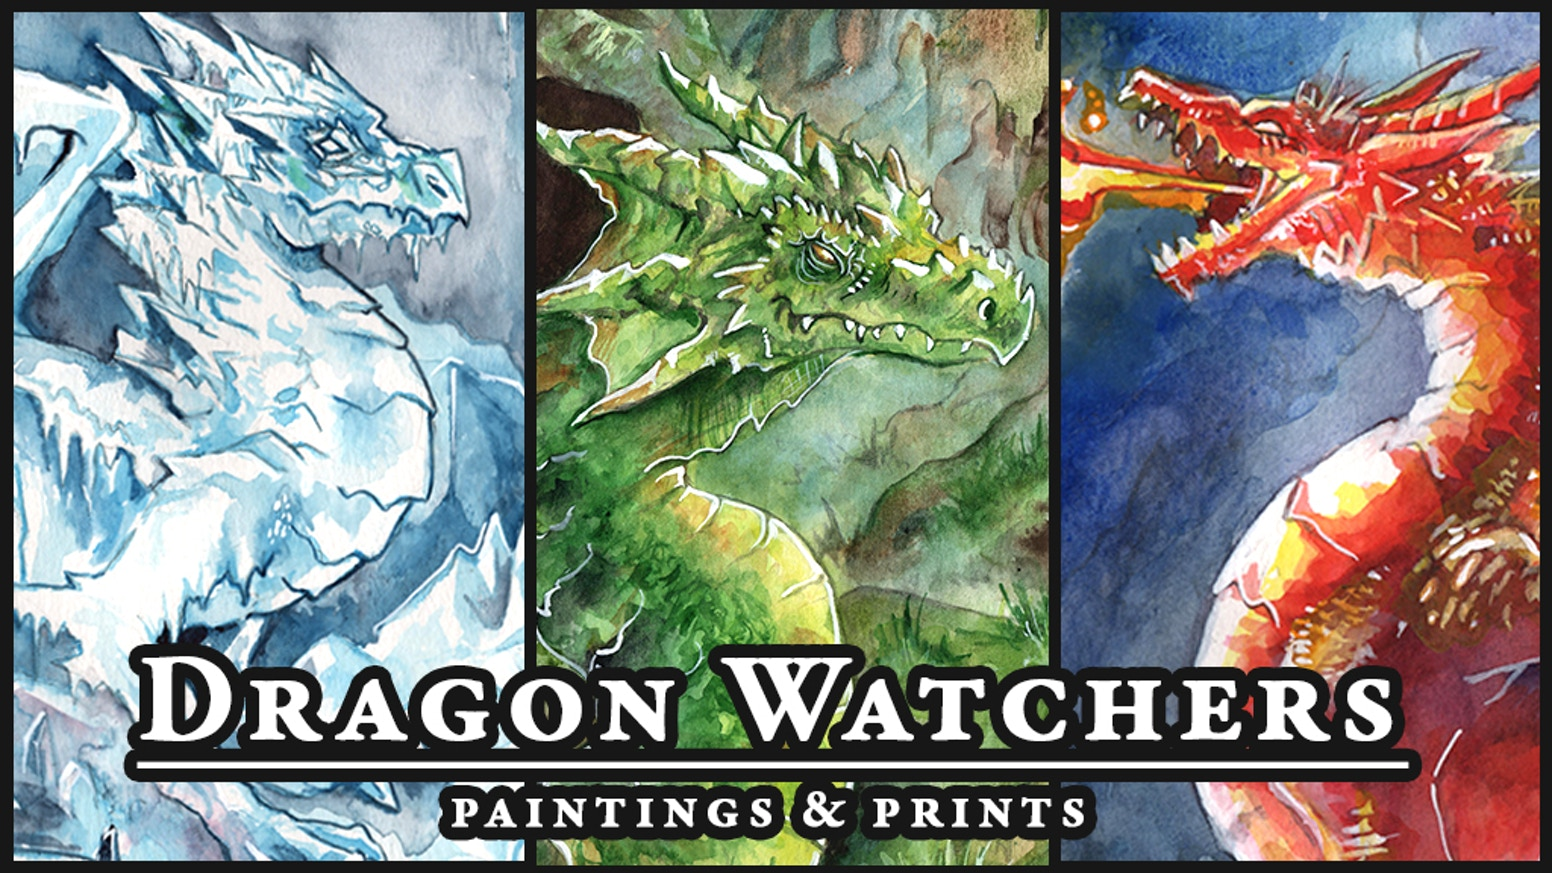 18 Dragons in detailed watercolor including Arctic, Jungle, and Cave Dragons. Own the originals, prints, or both!